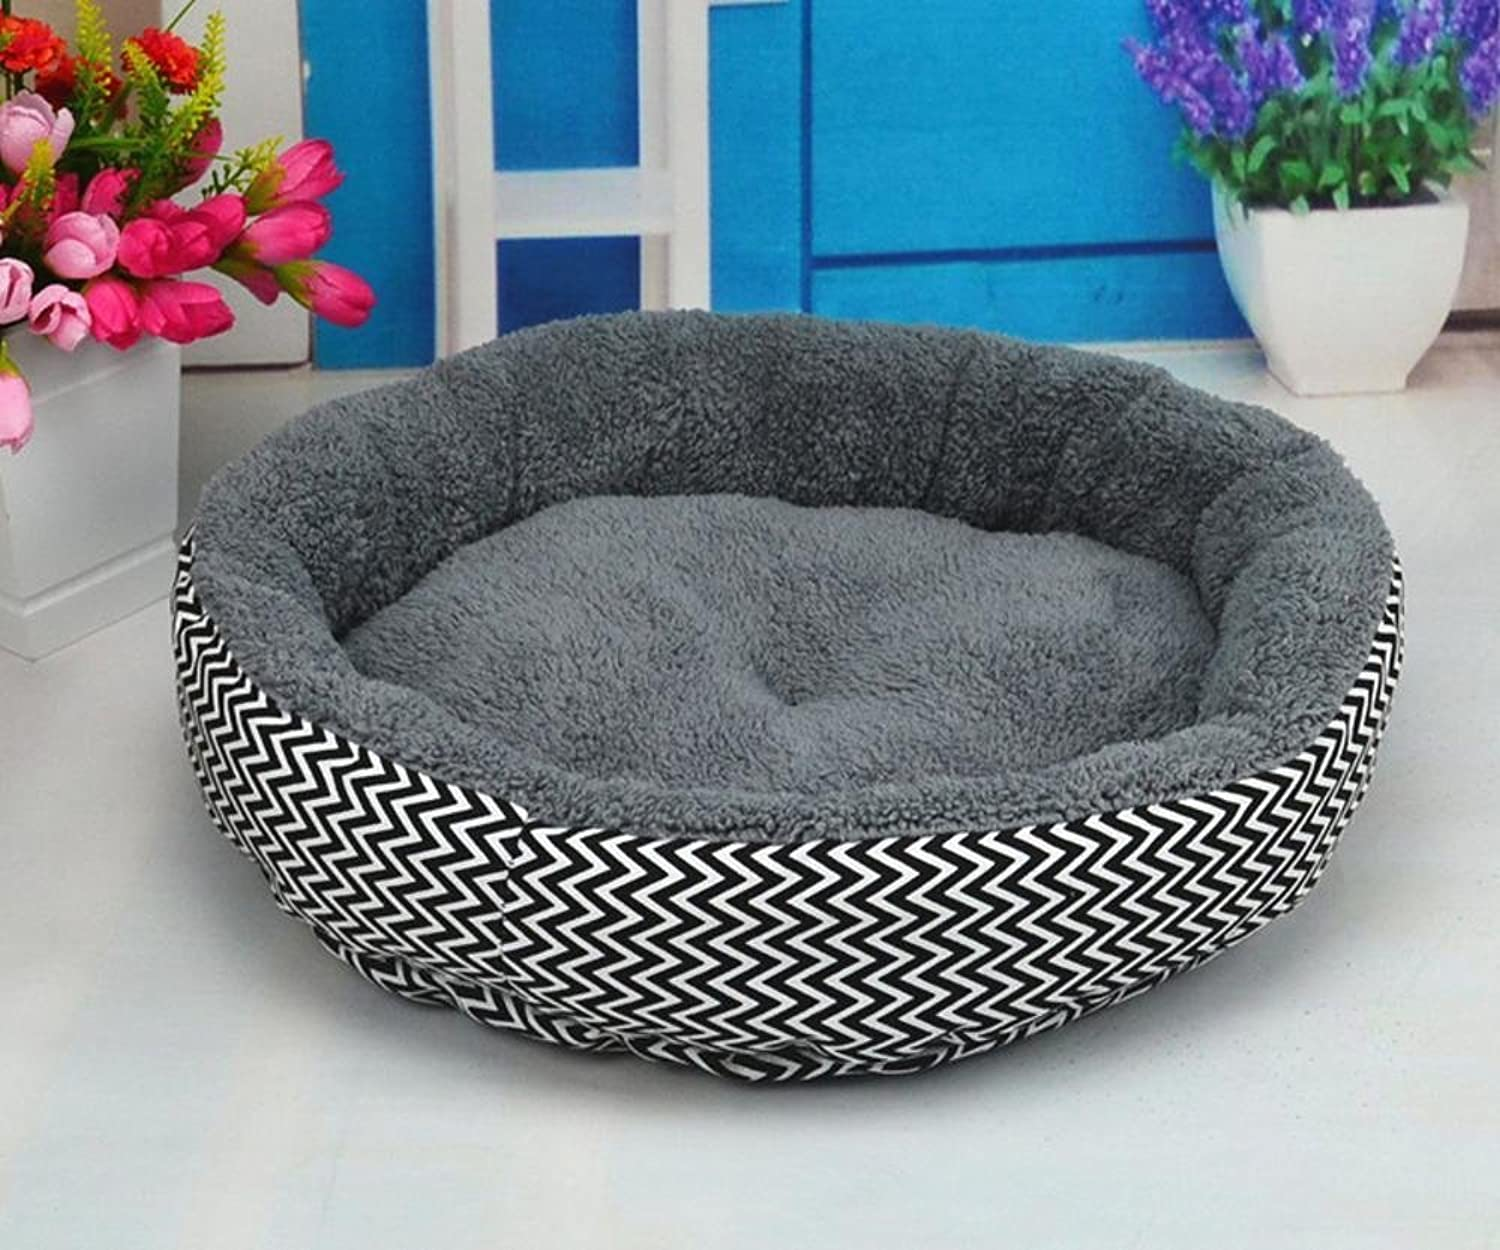 Lozse Pet Beds Pet Seat Mat Kennel comfort Printing canvas removable and washable for Dogs and Cats Sleeping Cushion